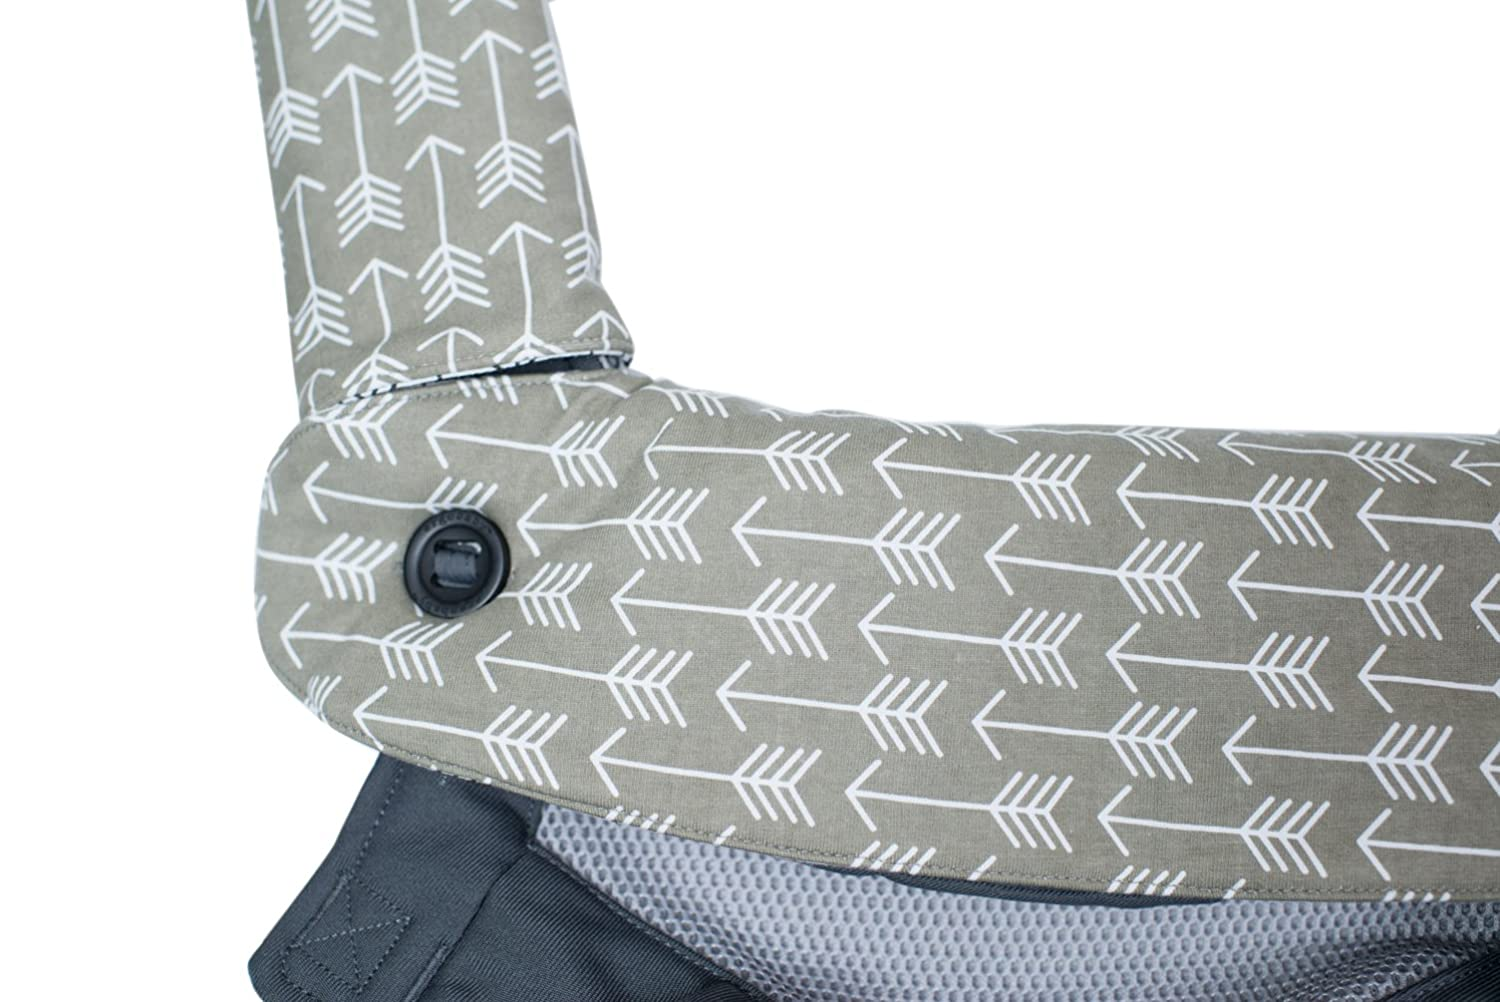 Great Baby Shower Gift by Mila Millie Premium Drool and Teething Reversible Cotton Pad Gray Arrow Arrow Design Fits Ergobaby Four Position 360 and Most Baby Carrier Hypoallergenic